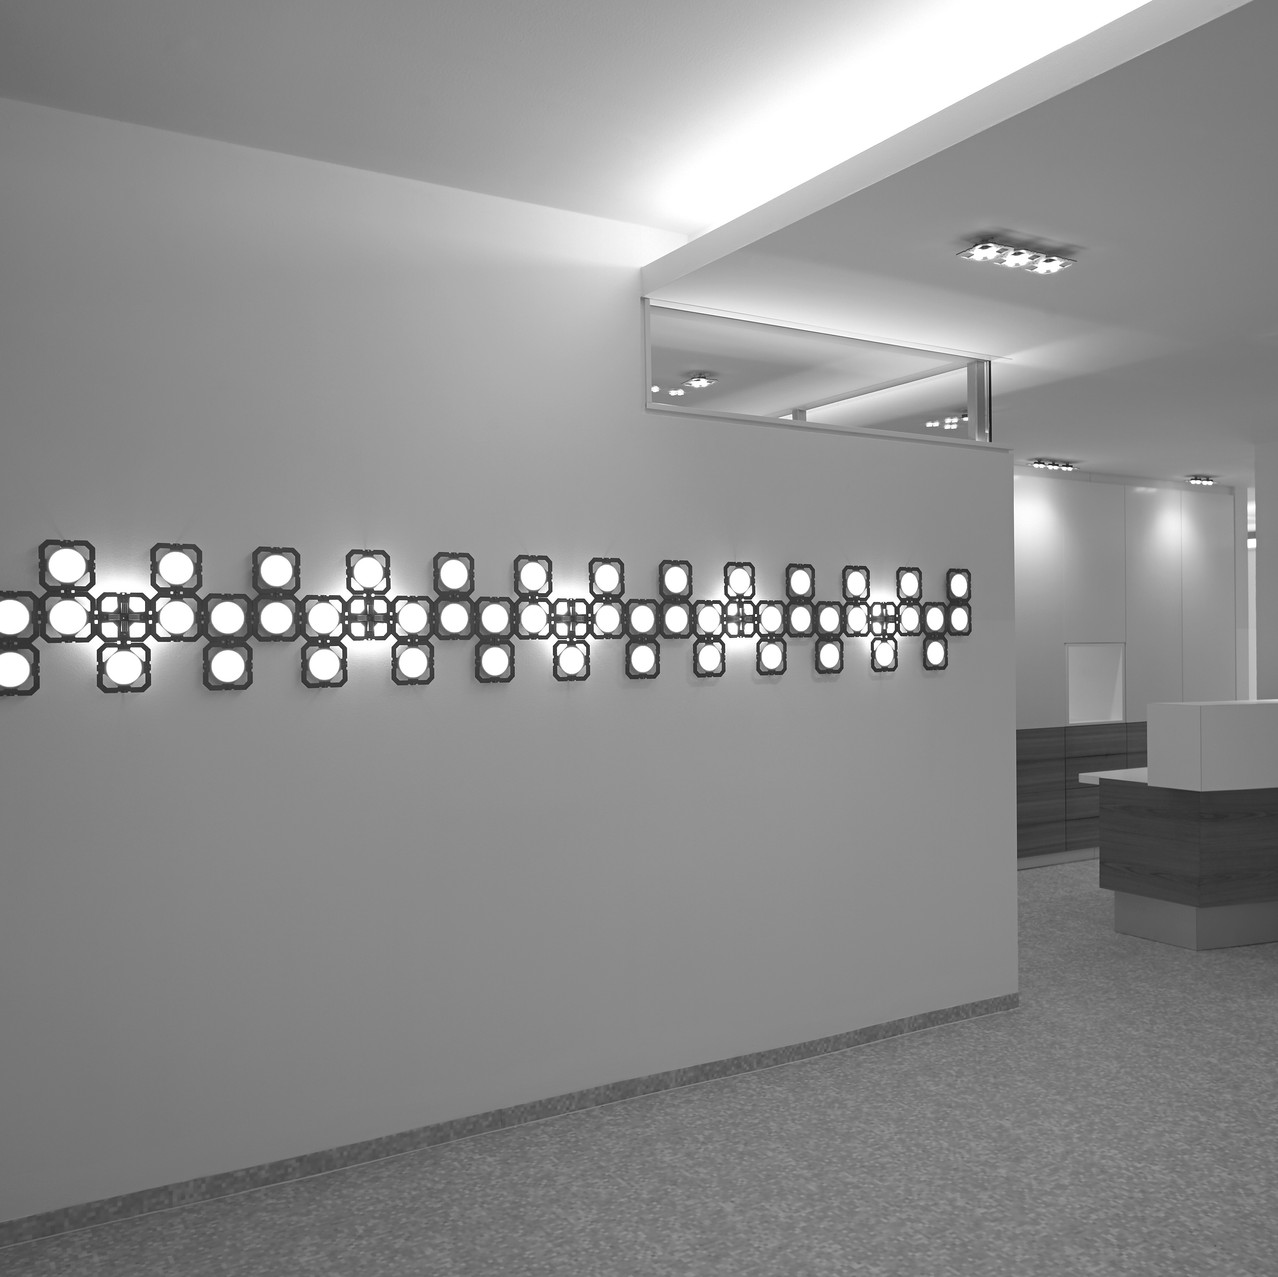 LED_OLED_Installation_Foto_Andreas_Reitersw